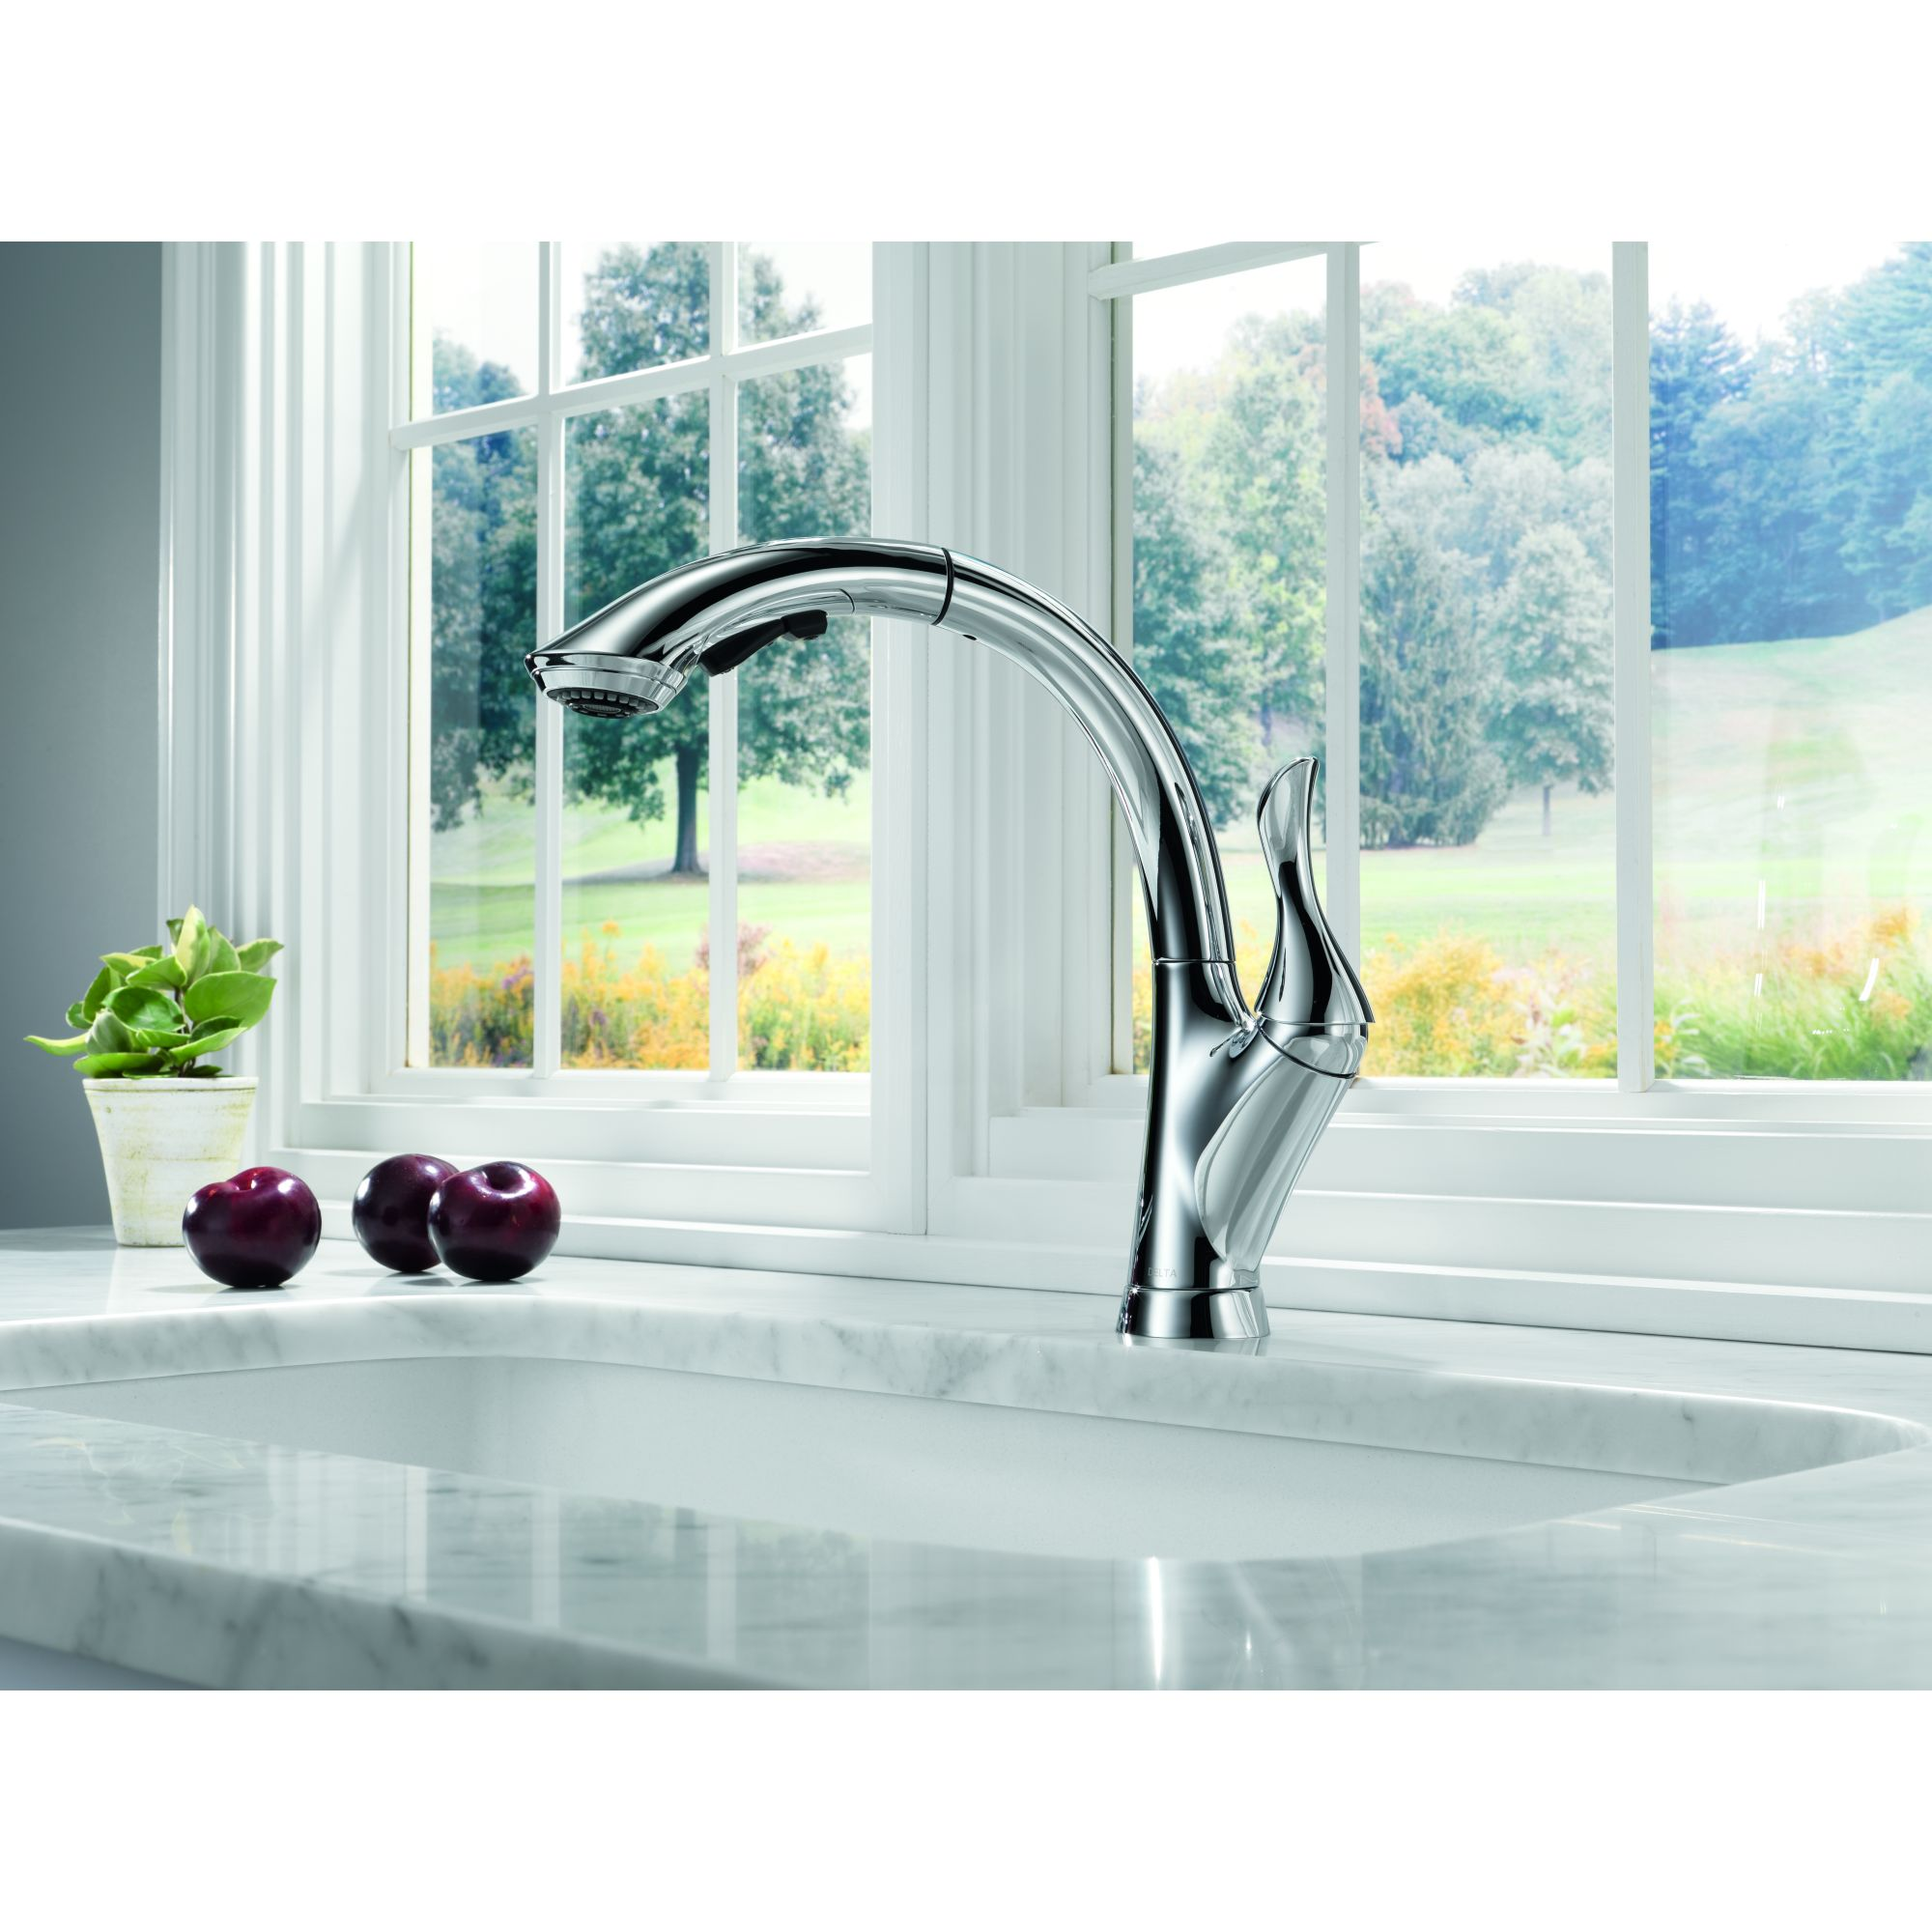 chic grohe faucets in silver with single handle on marble countertop with sink for kitchen decor ideas